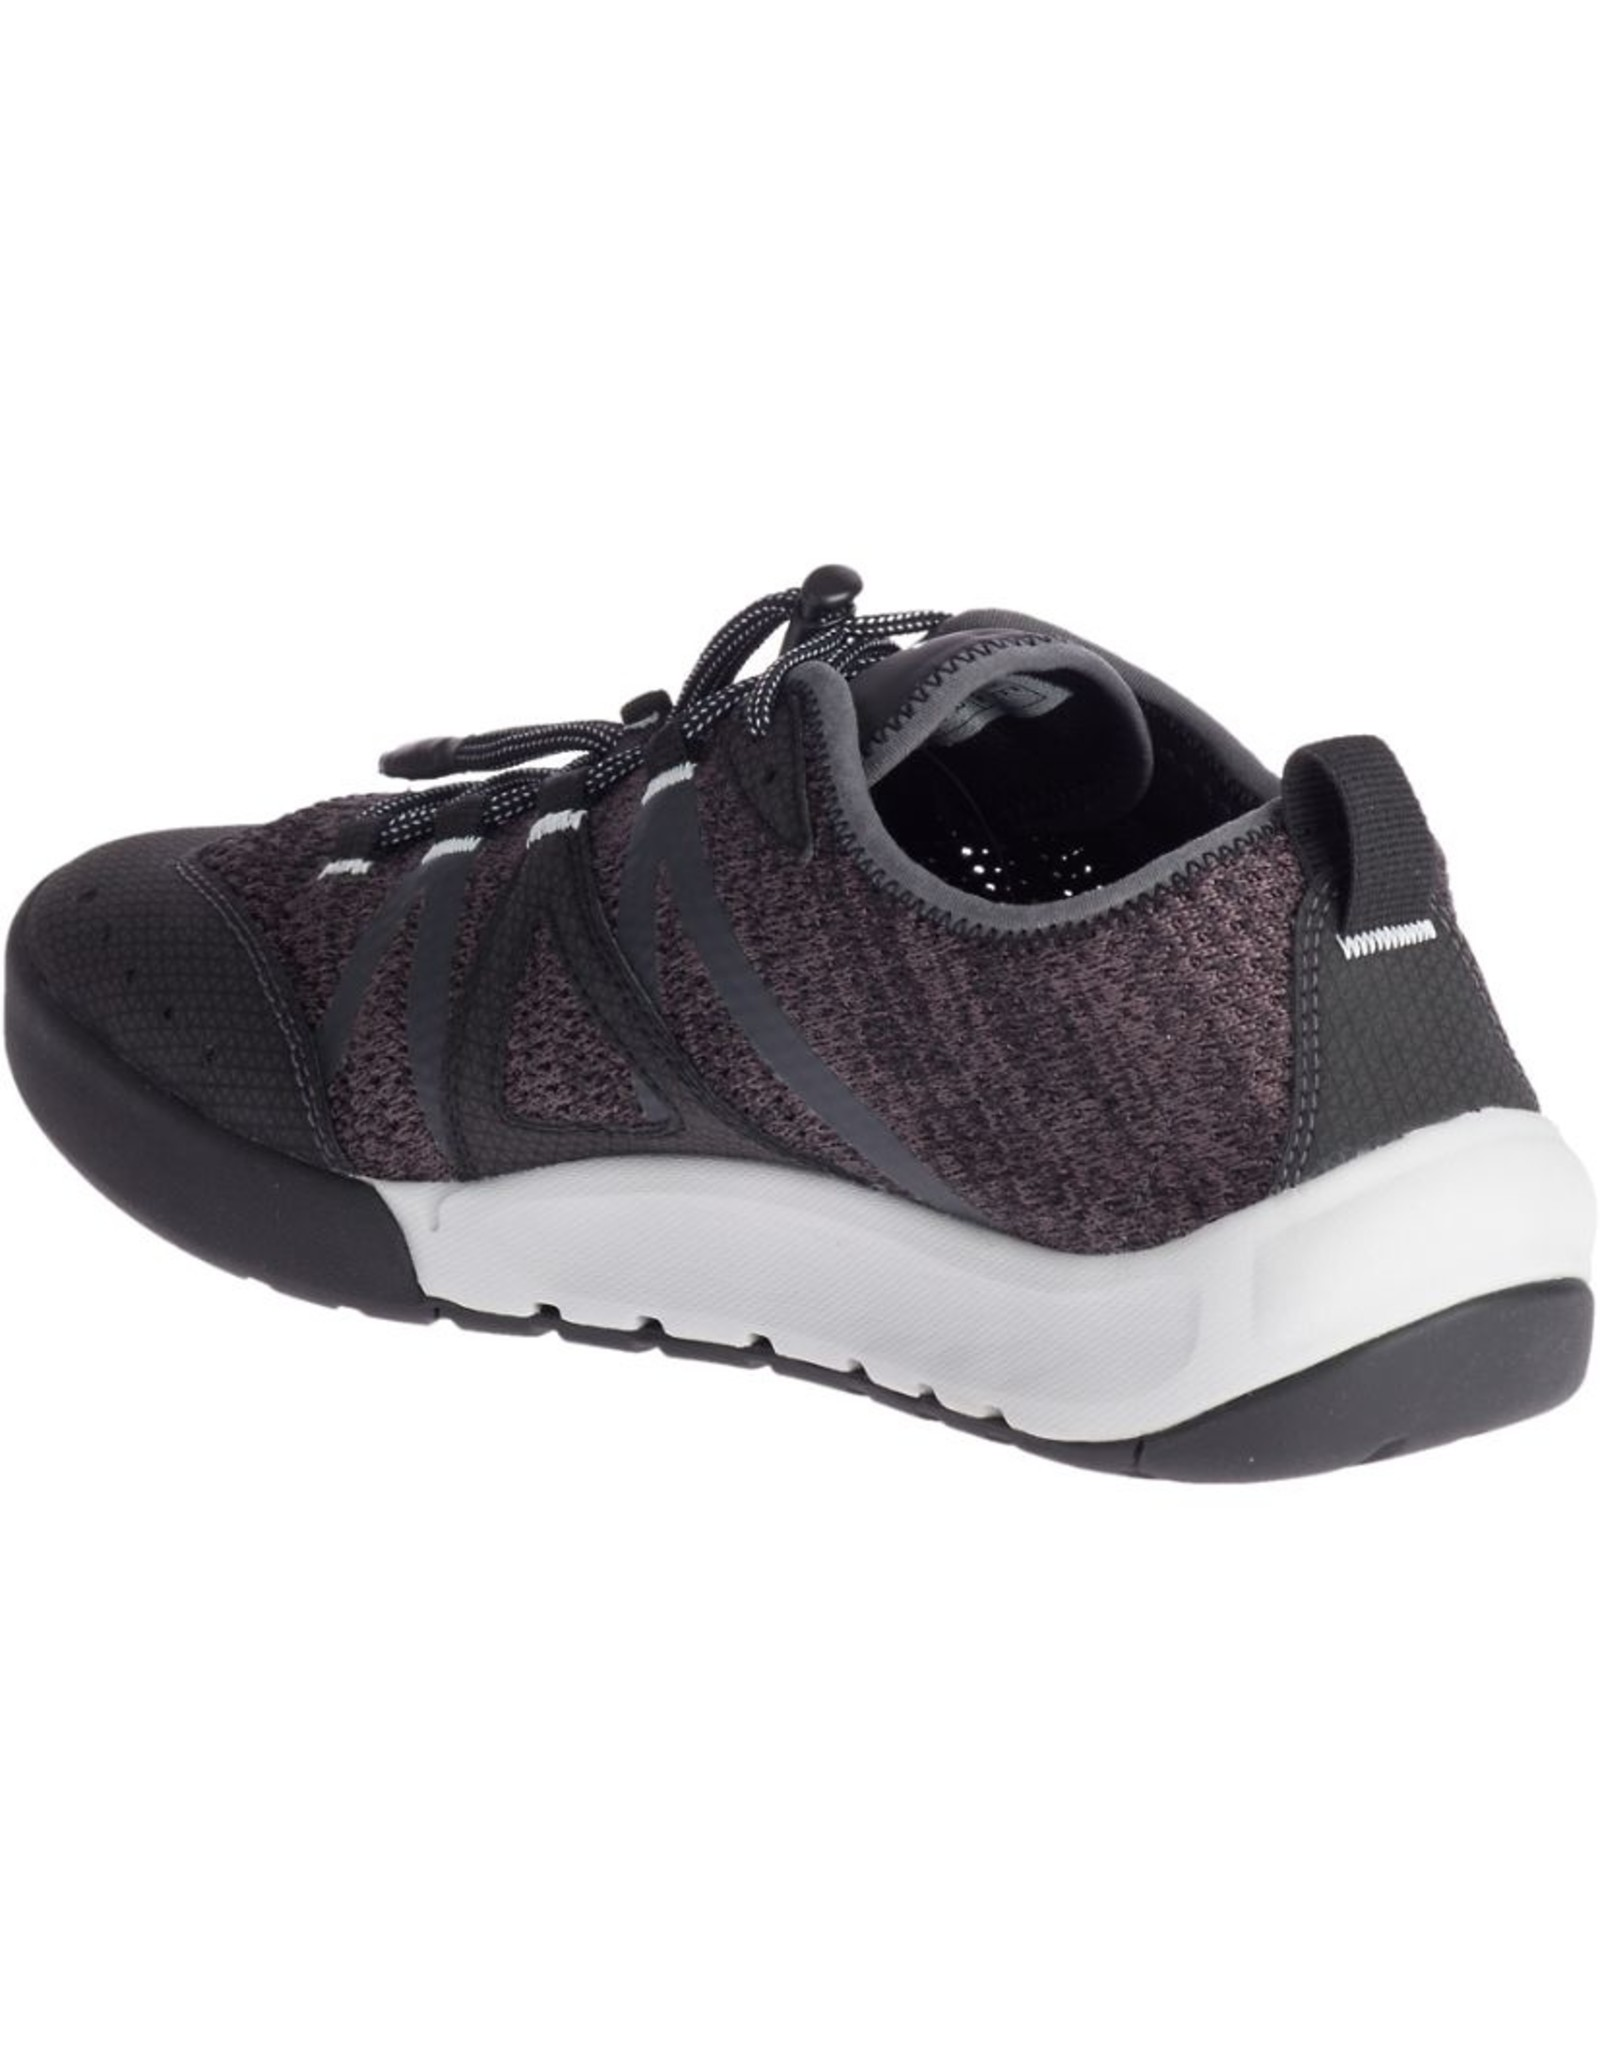 Chaco Torrent Pro Casual Shoes